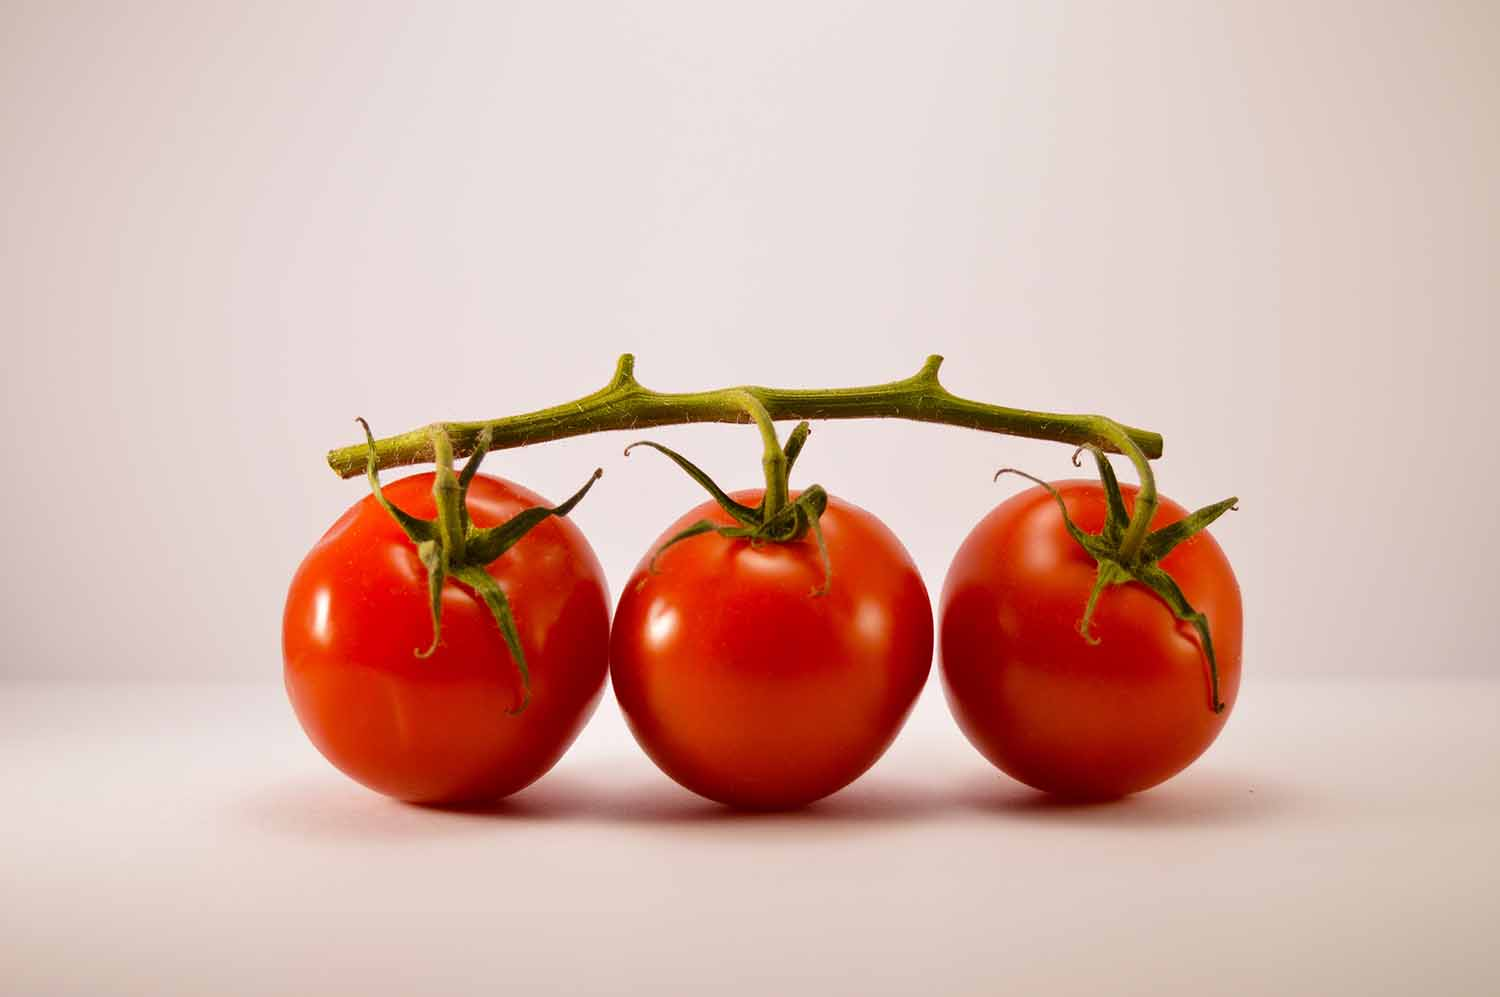 The antioxidant lycopene found in tomatoes acts as an internal sunscreen.